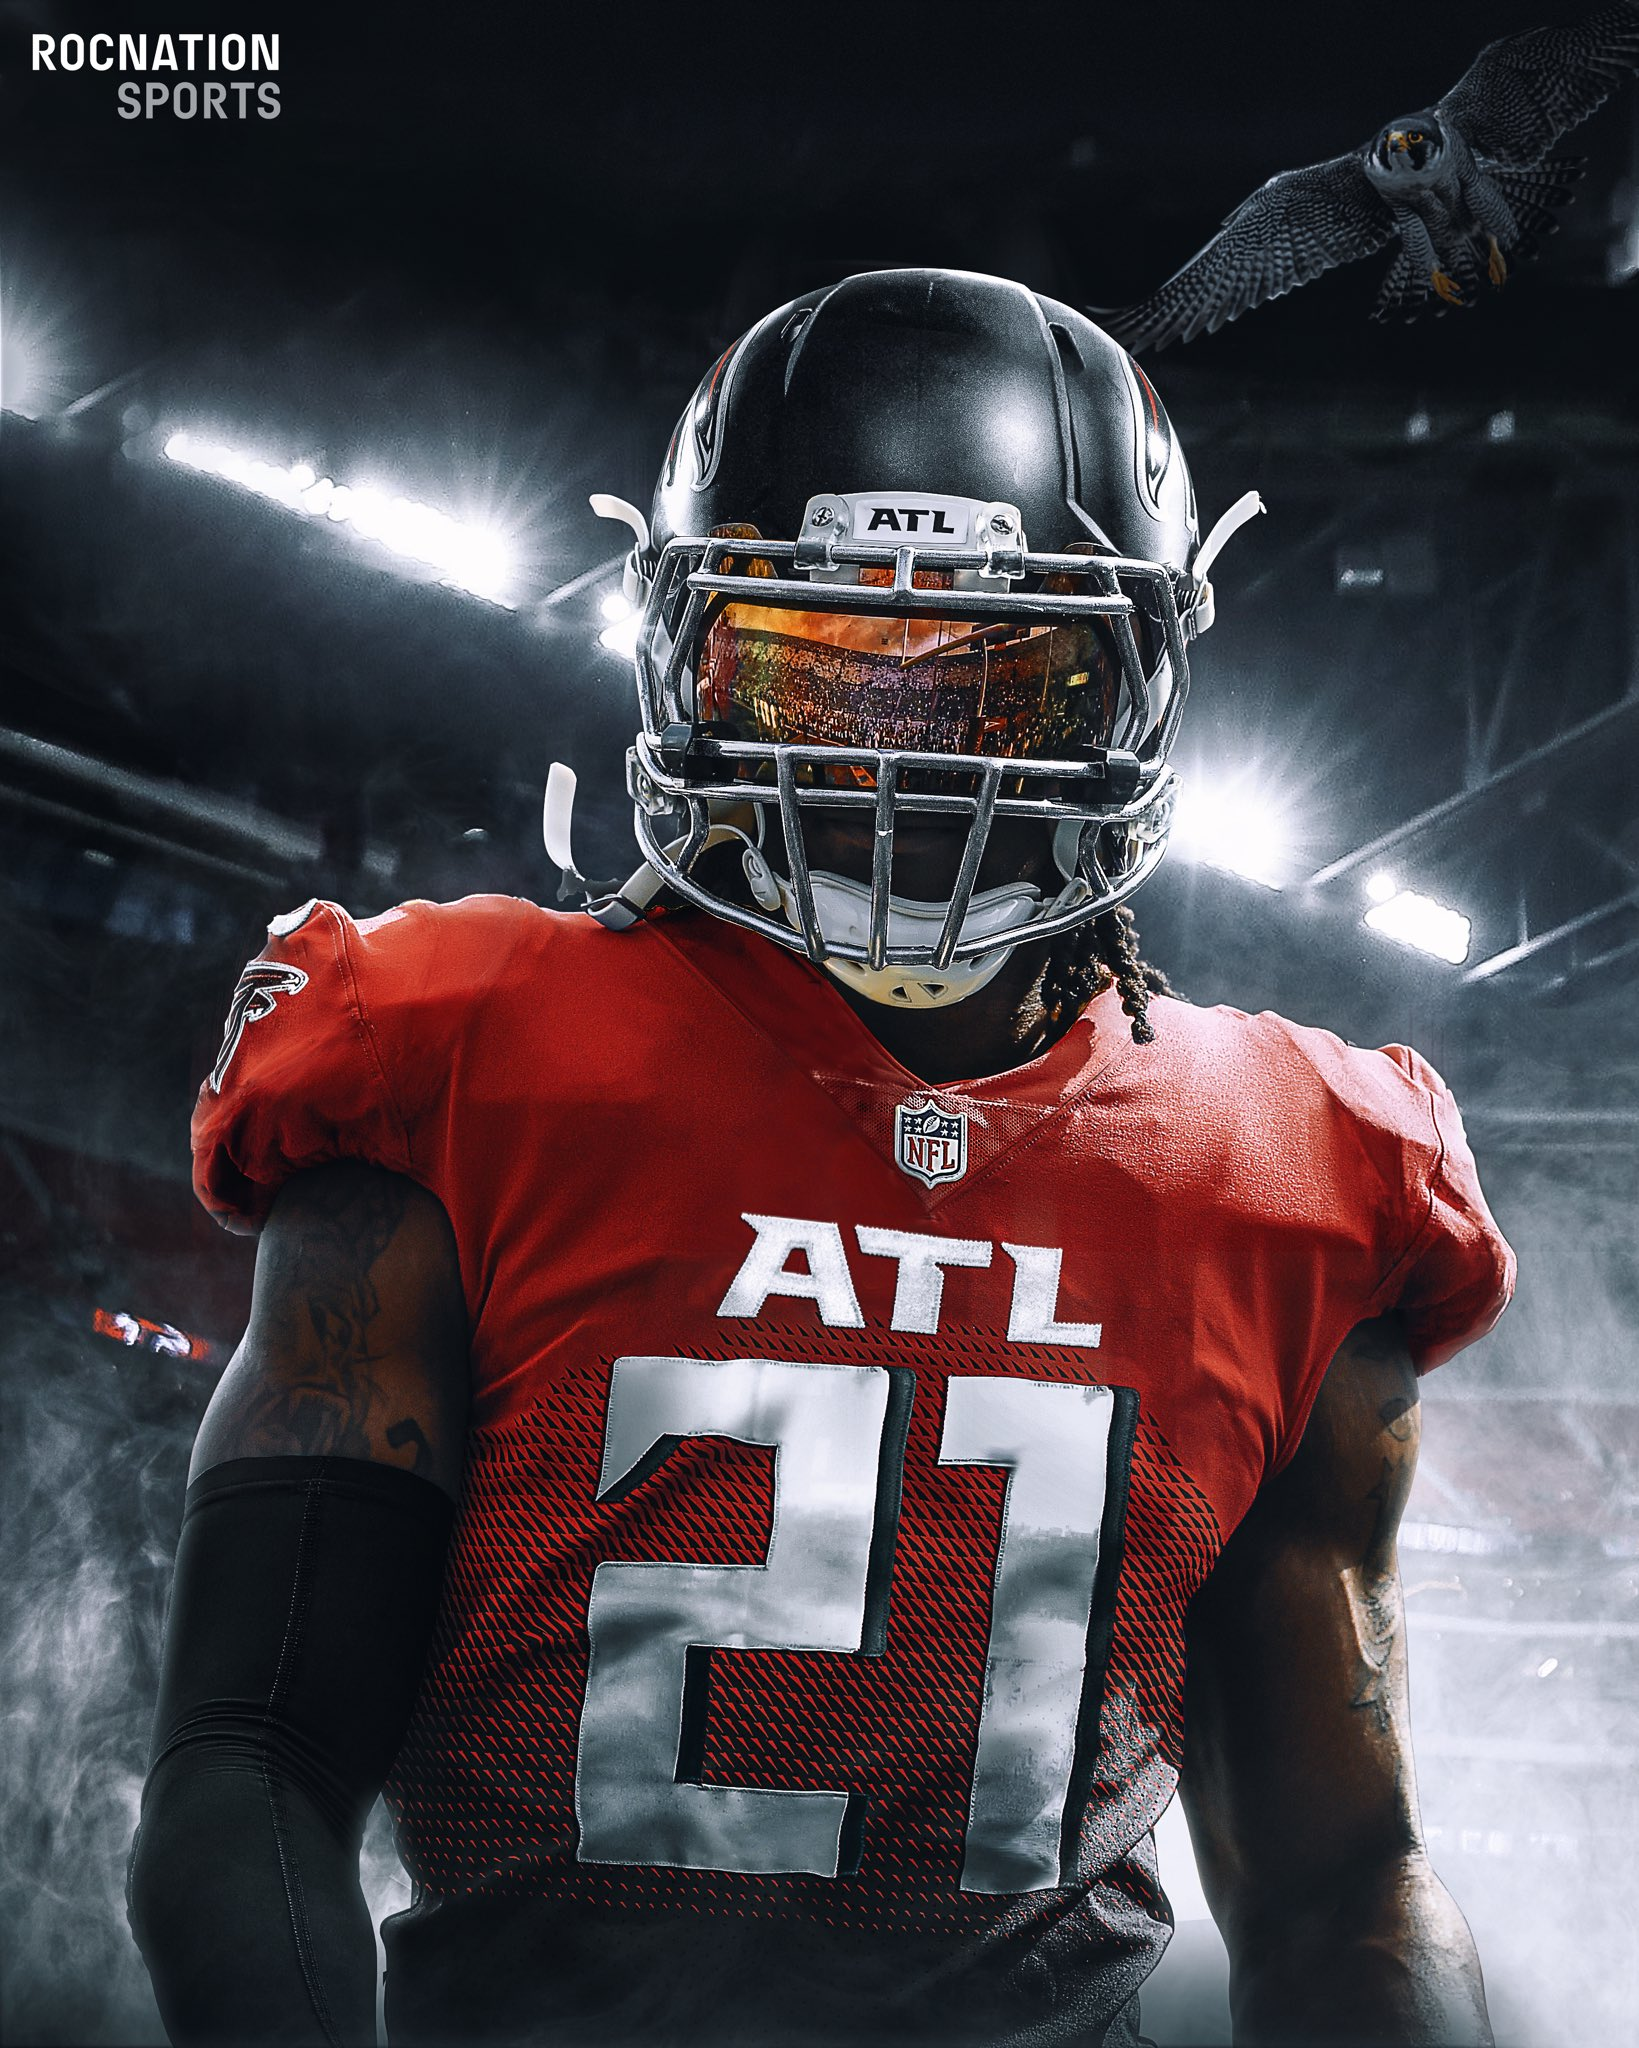 Todd Gurley Reveals New Jersey Number With Atlanta Falcons